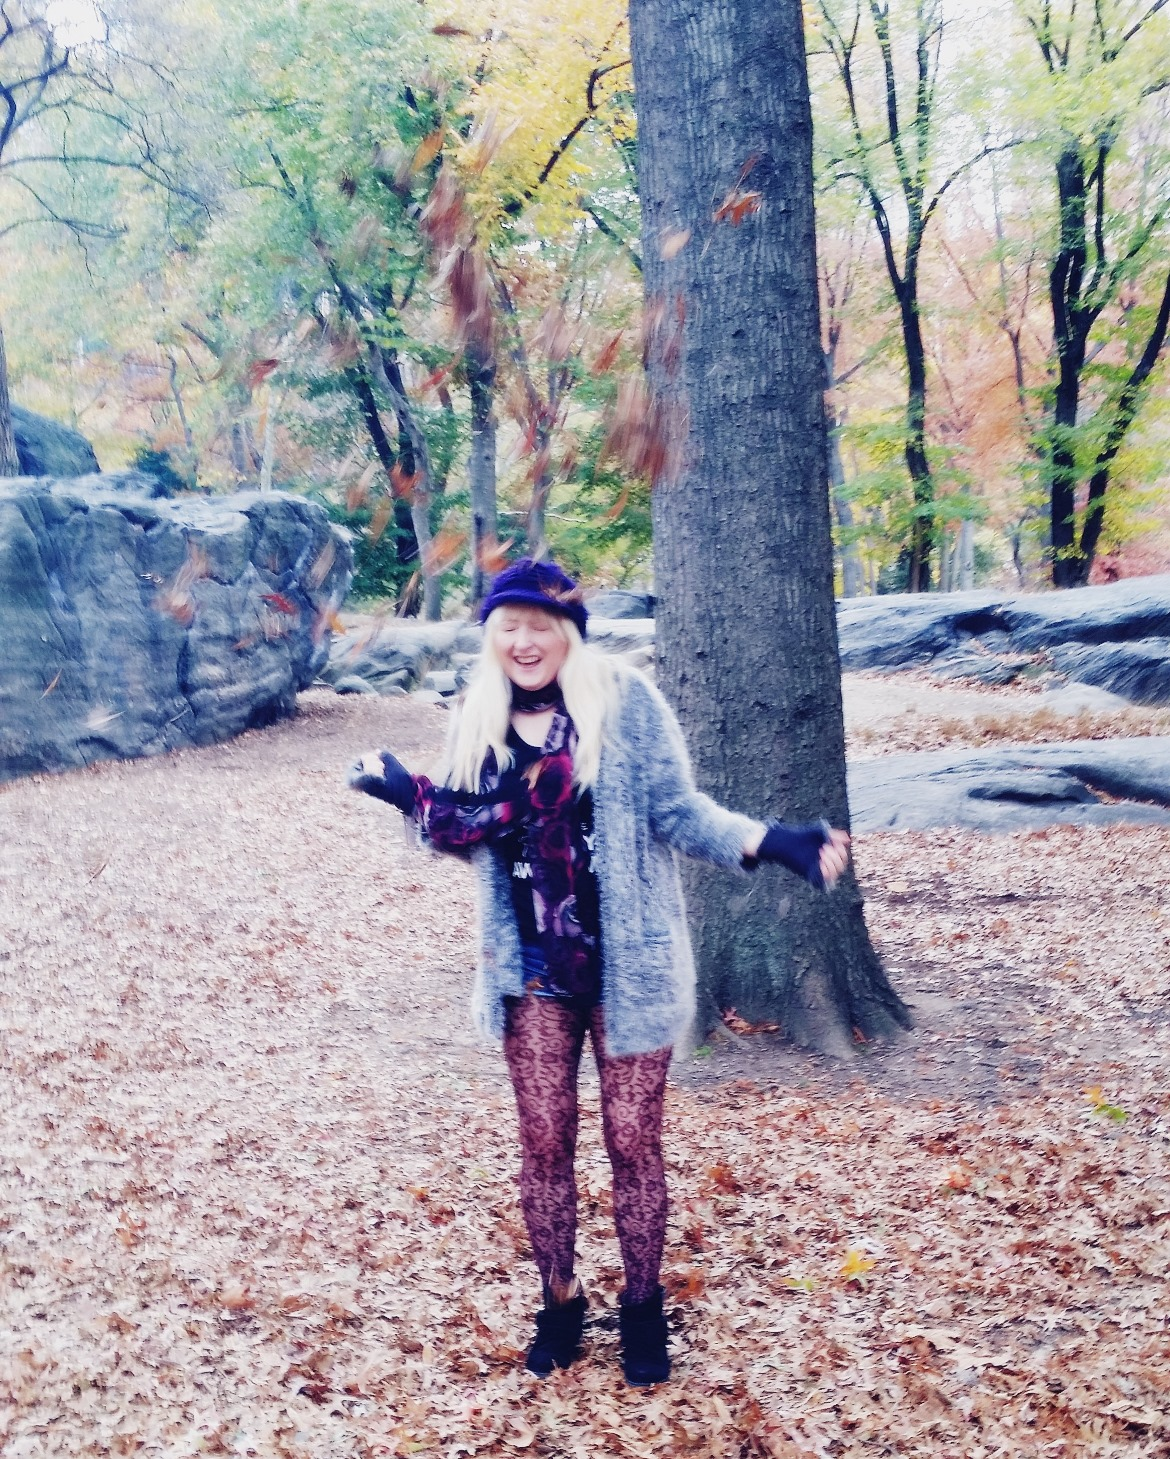 Autumn in Central Park - New York New York, travel blog by BeckyBecky Blogs